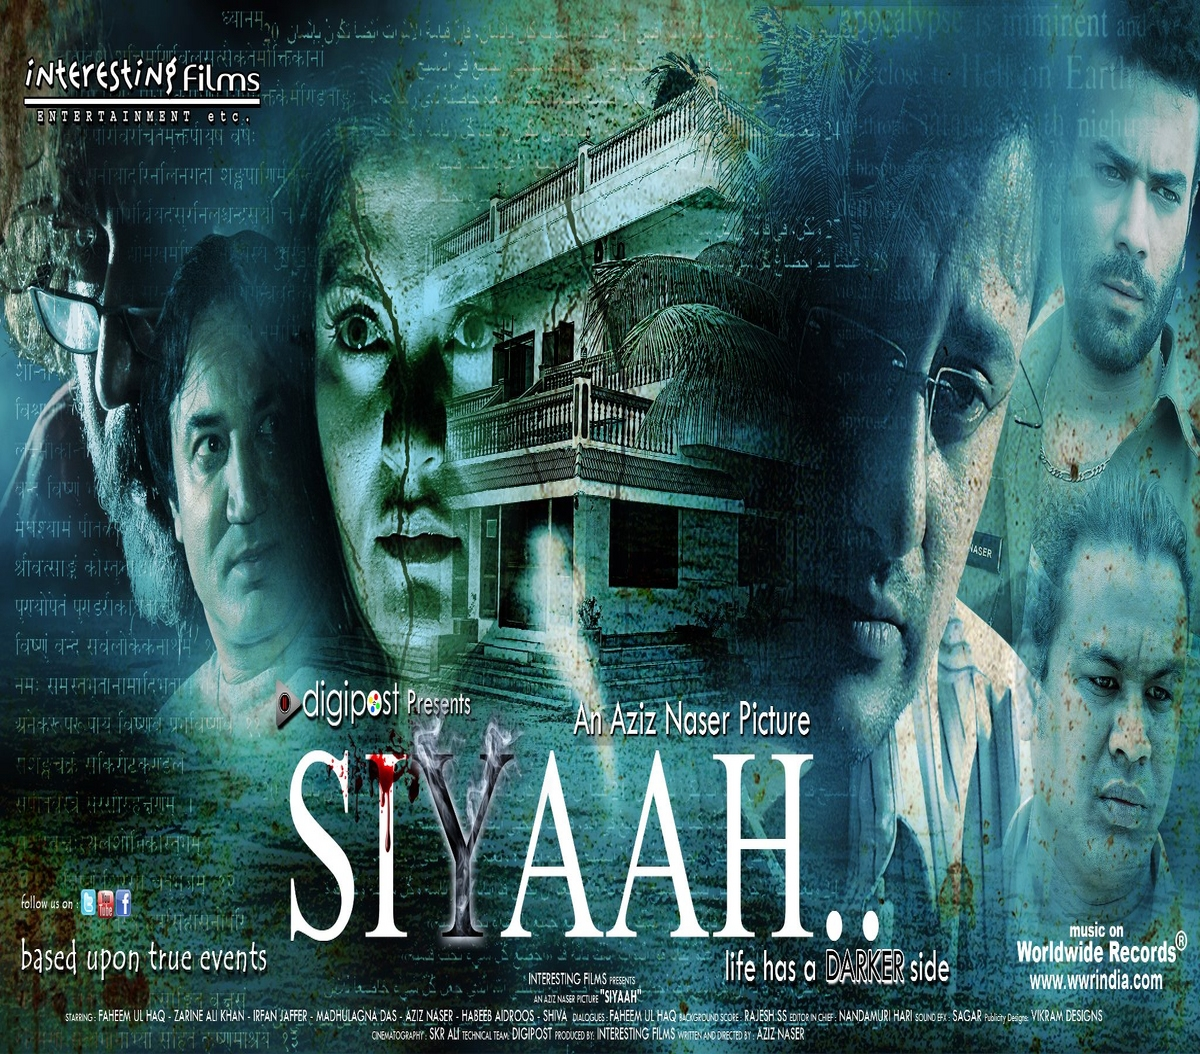 Siyaah.. - Movie Poster #5 (Original)